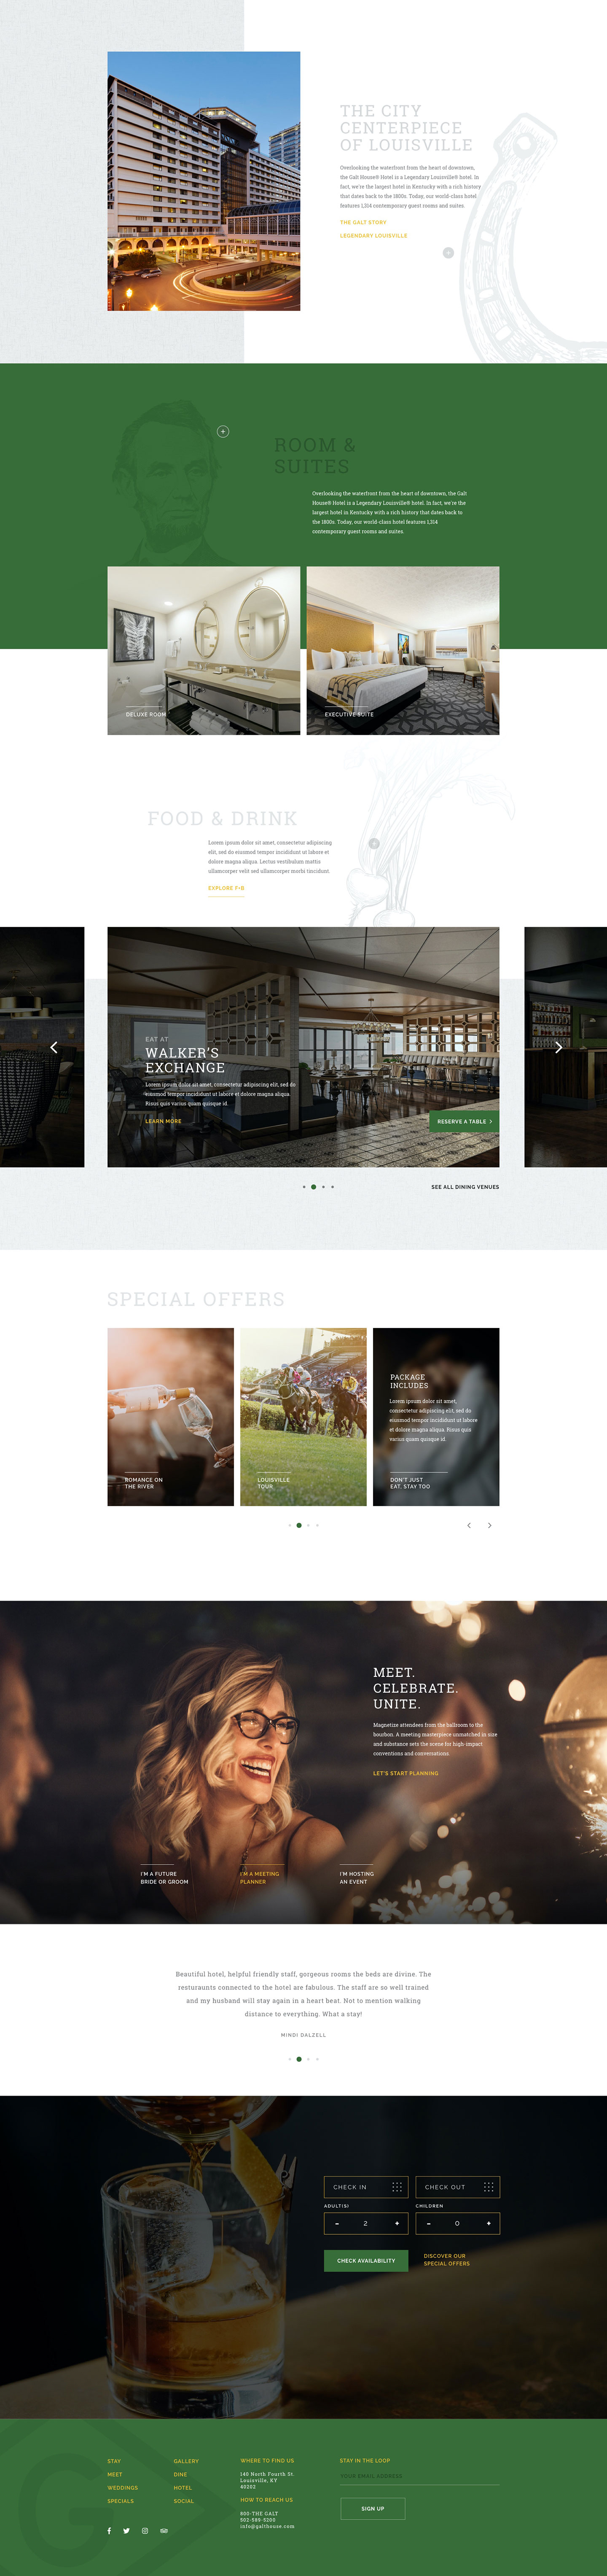 Full screen capture of Galt House home page